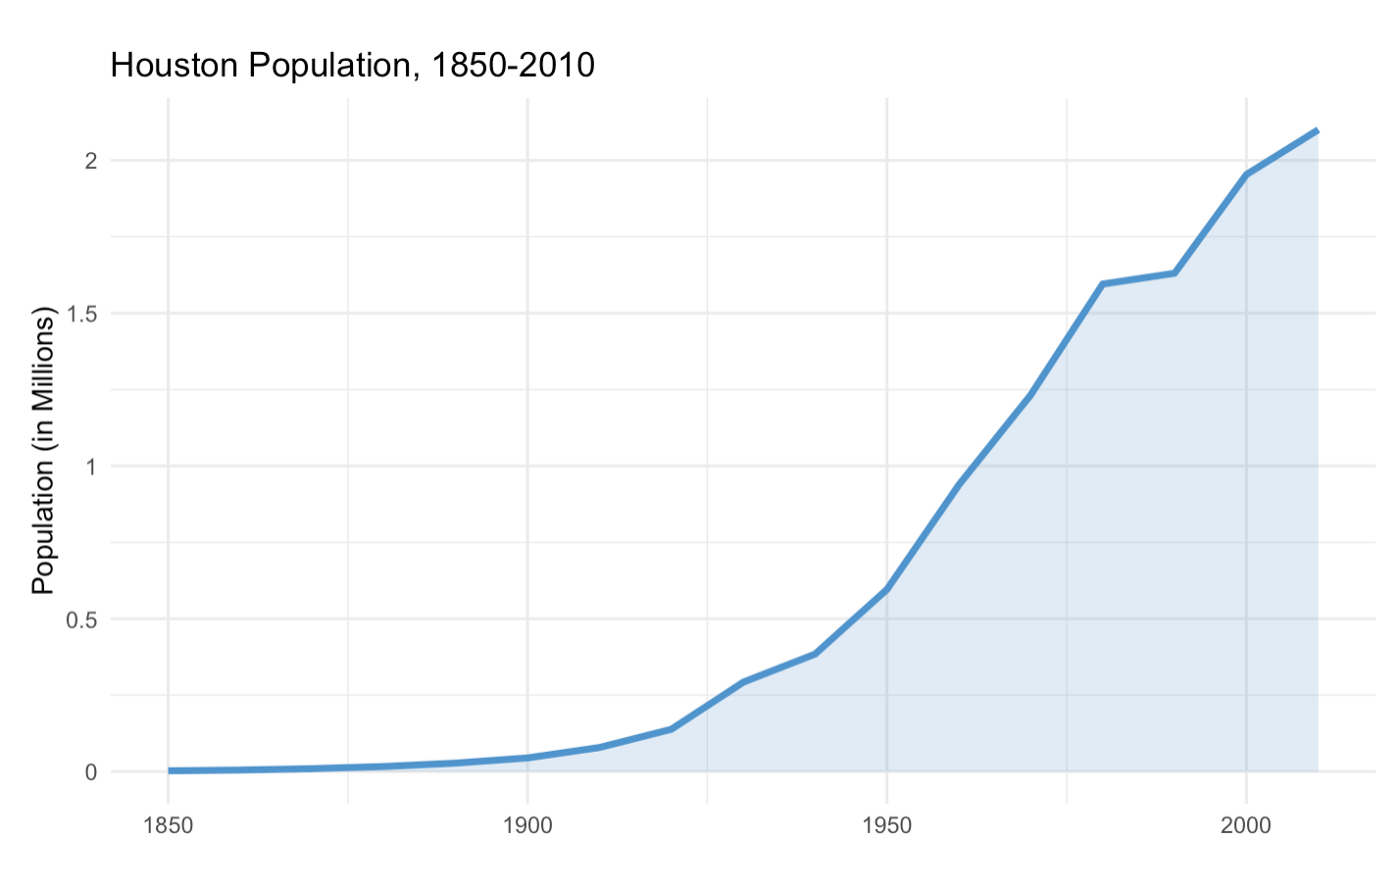 Houston_Population_1850-2010.png